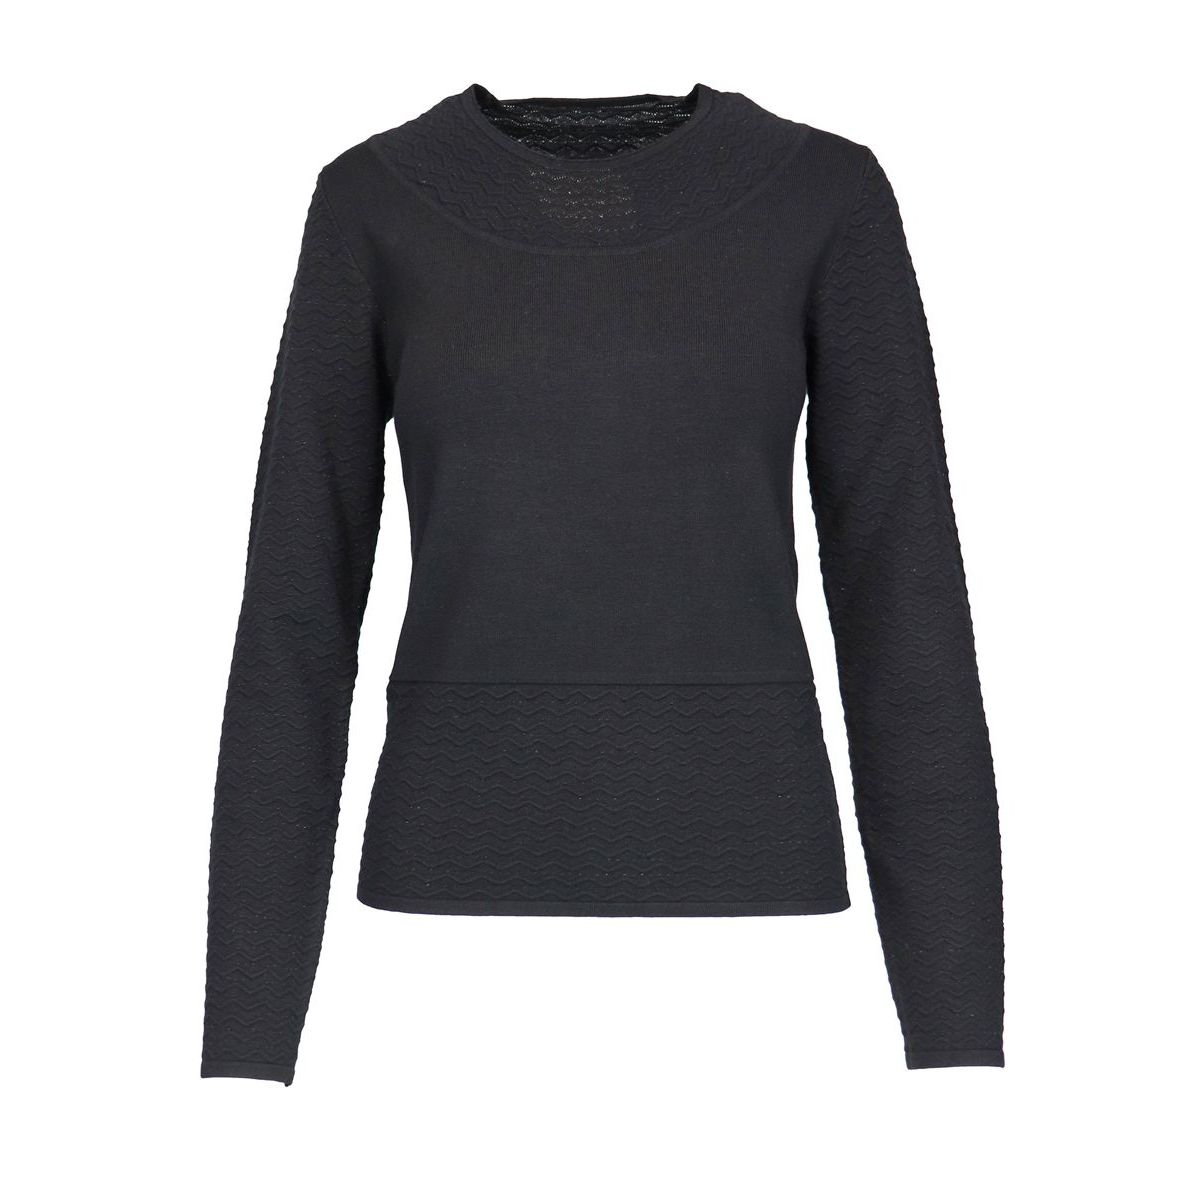 MORALES shirt with sleeves and wave-like details Black Nenette